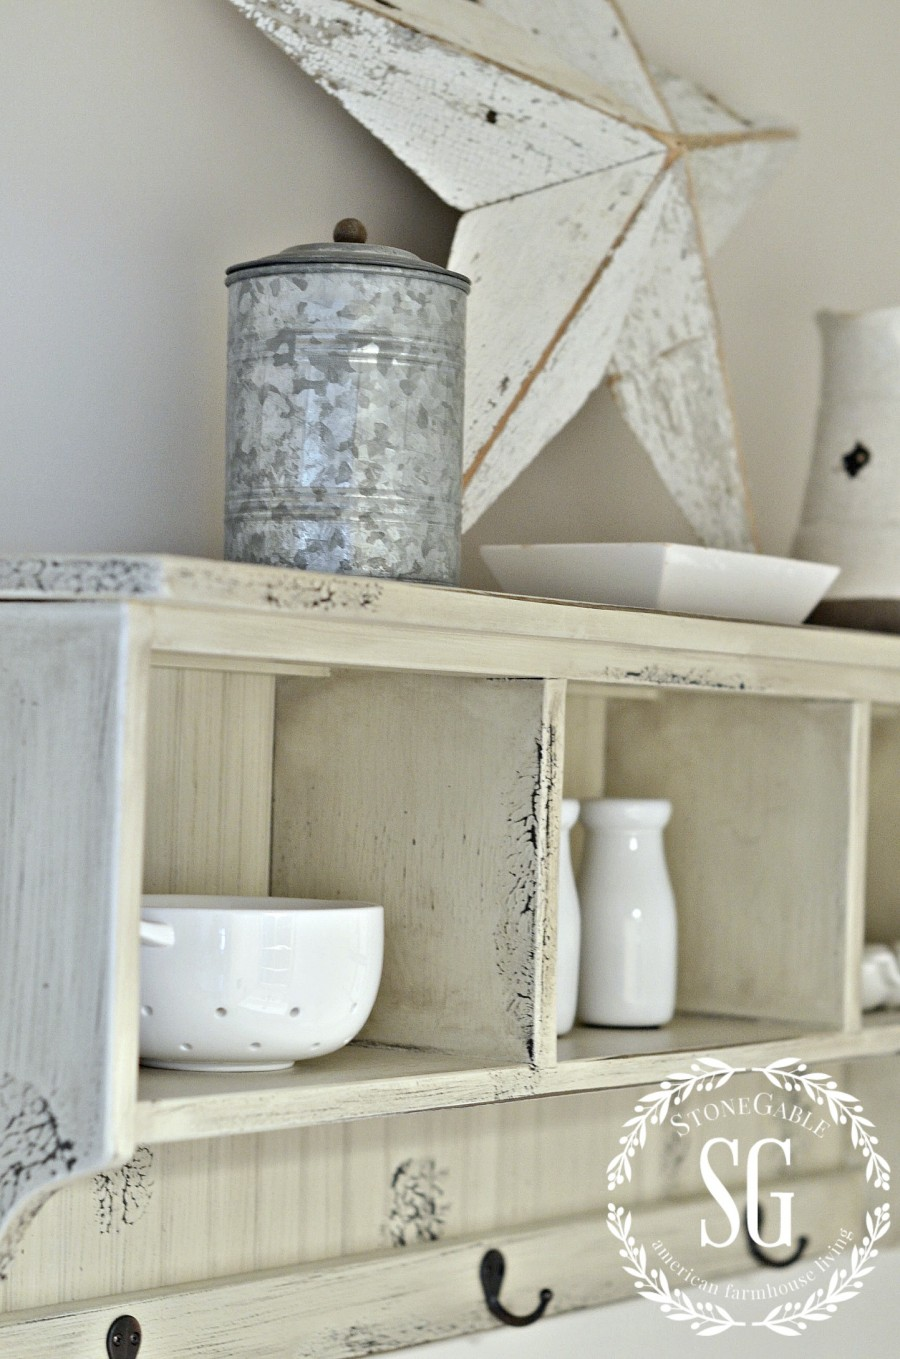 FARMHOUSE POWDER ROOM REVEAL-shelf-stonegableblog.com